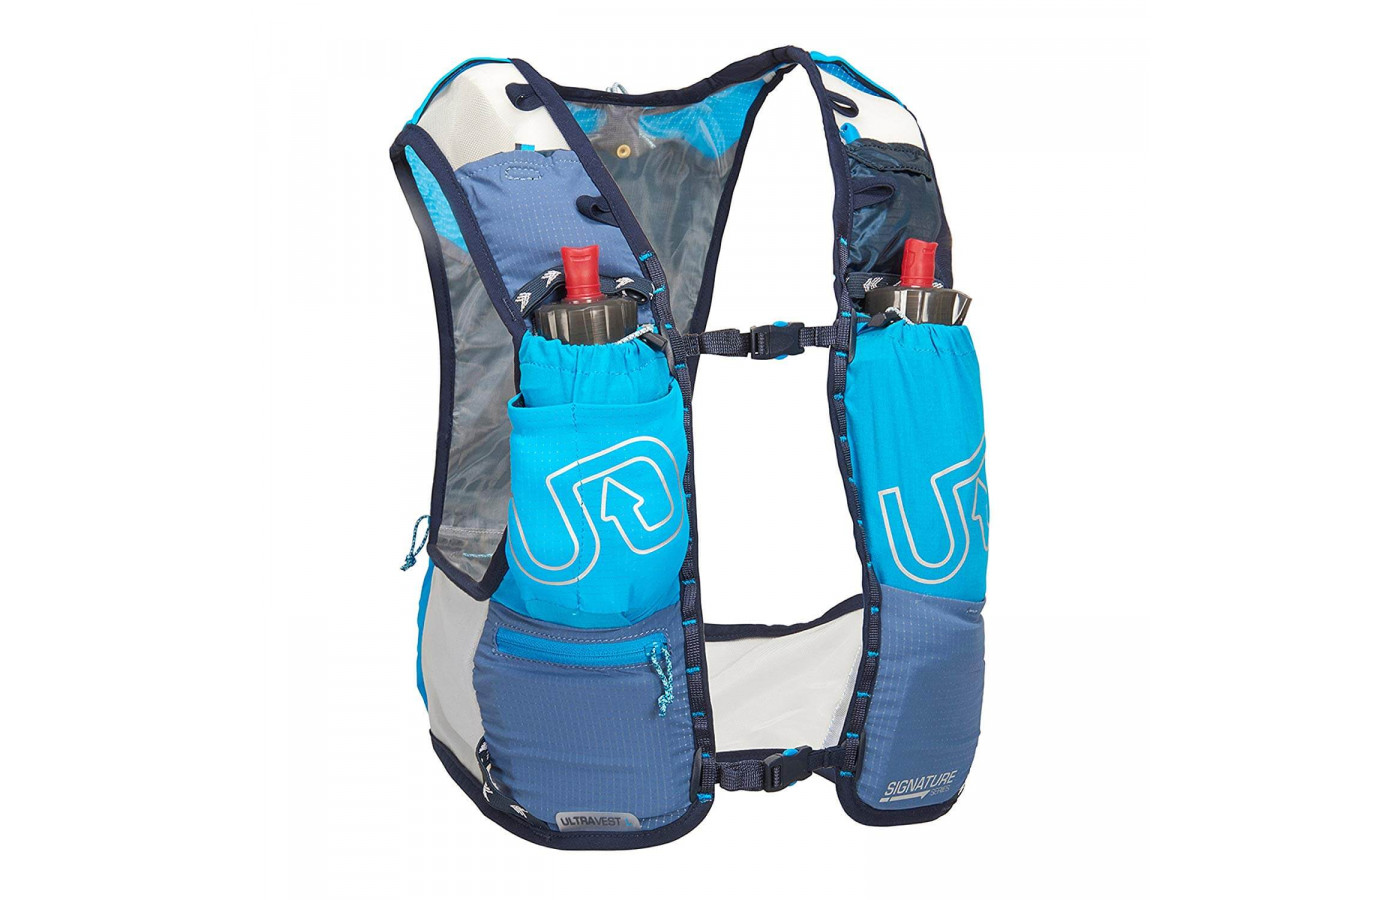 The Ultra Vest 4.0 is only available in Signature Blue